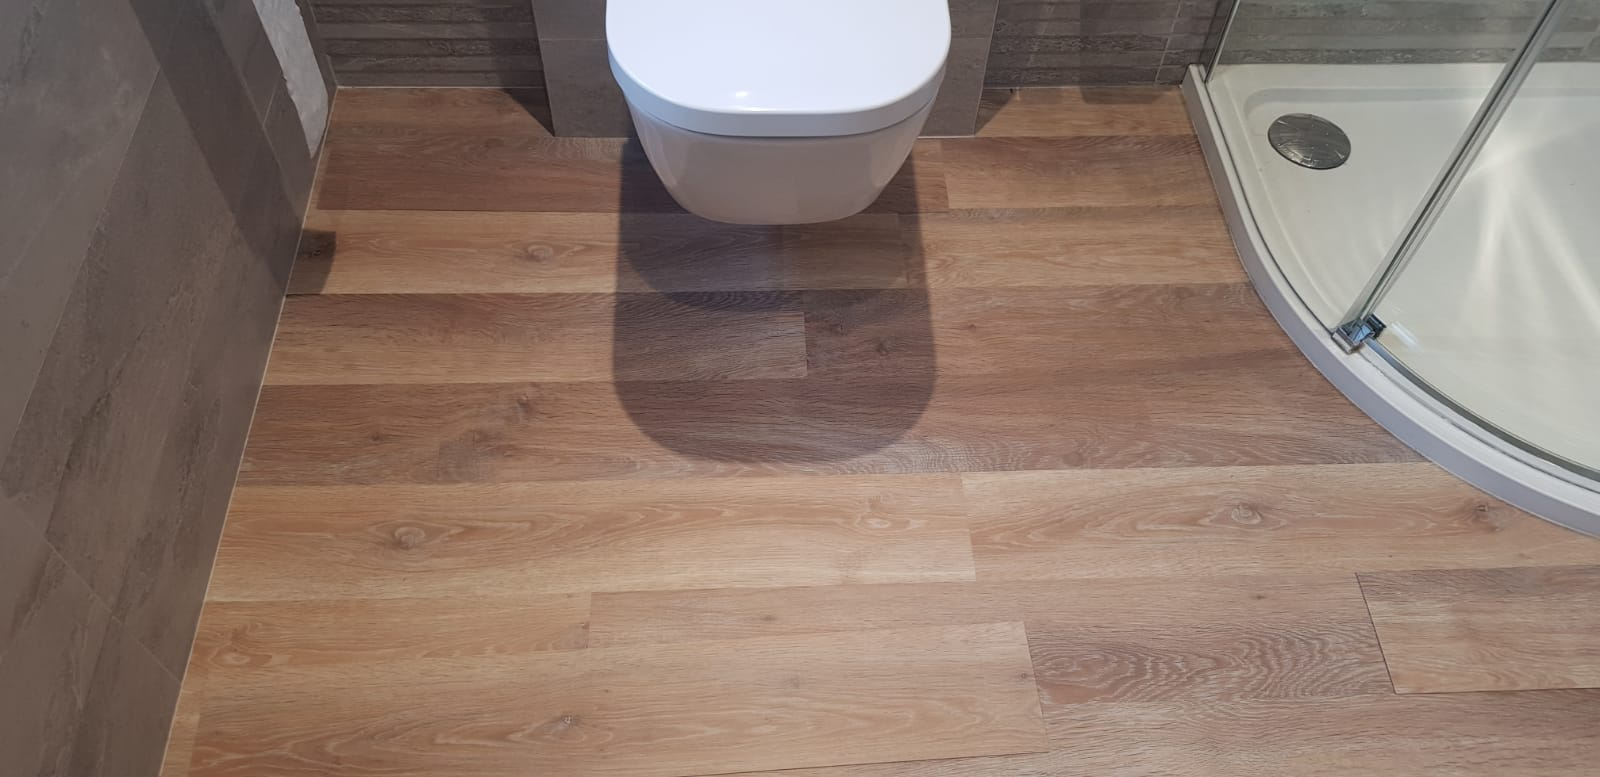 Amtico Wood Effect Luxury Vinyl Tile In Barnes 2